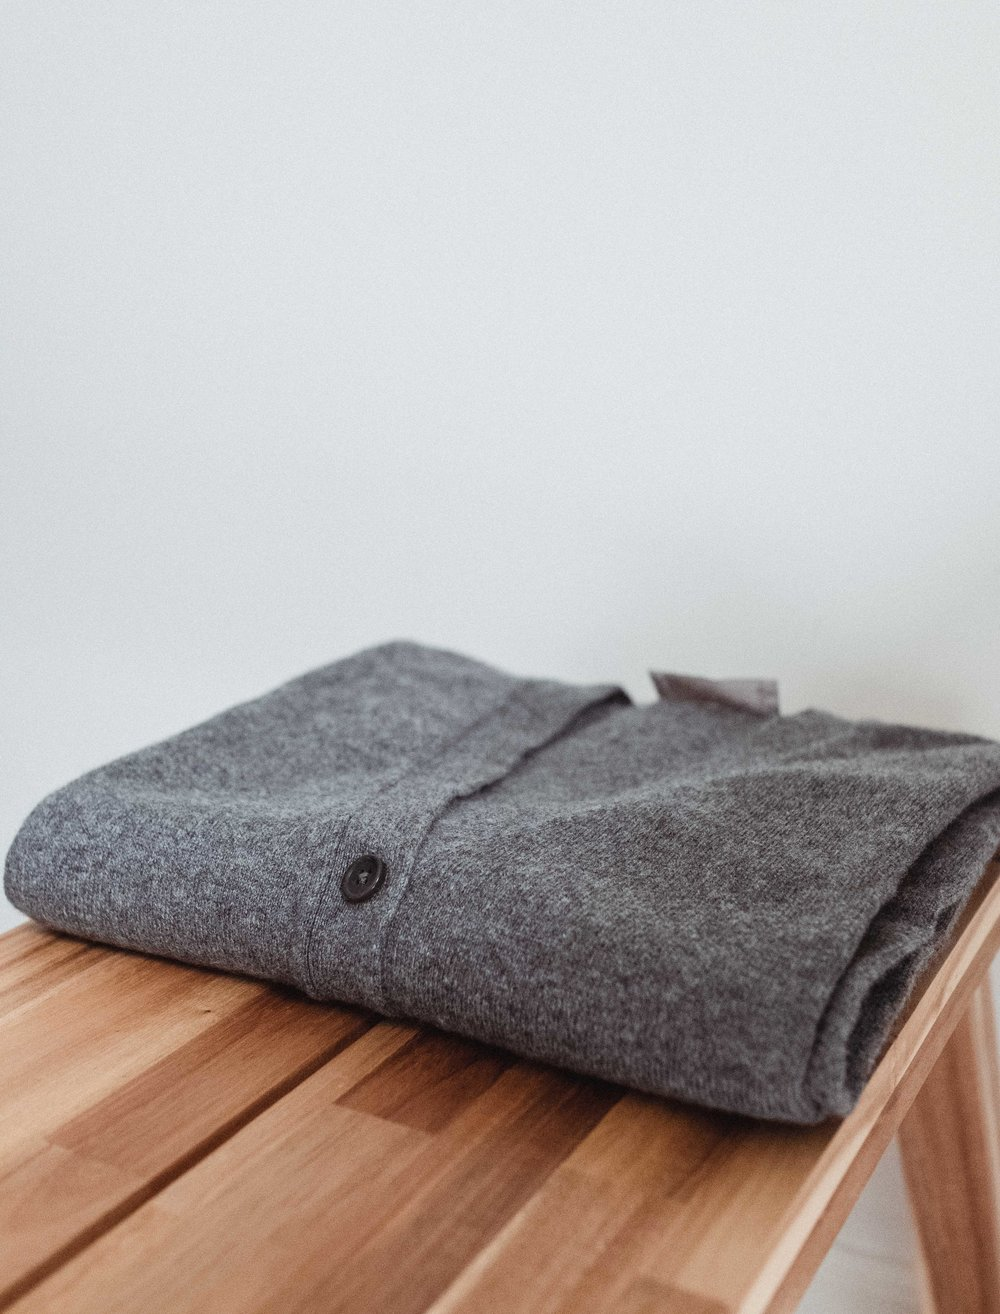 Everlane:  Square V-neck Cardigan  Here's a final look at my freshly cleaned and folded sweater!